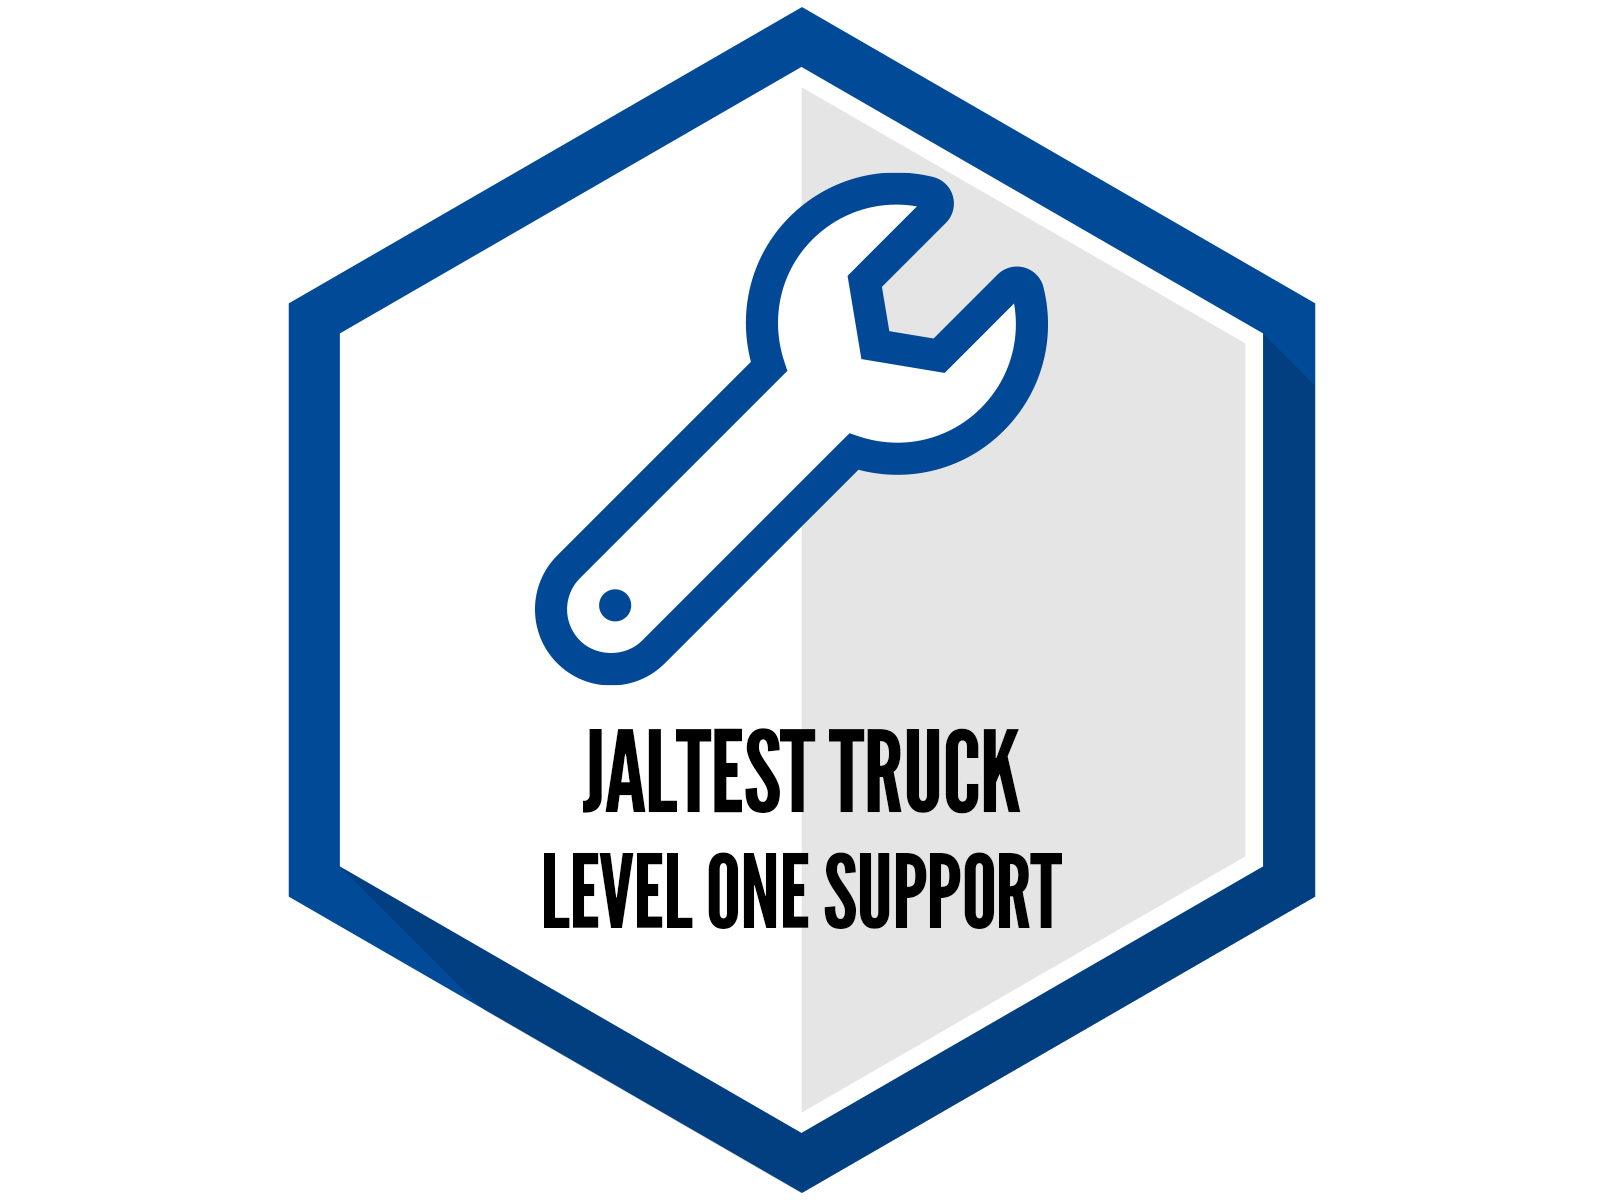 Jaltest Truck Annual Software Renewal - Level 1 (Basic)